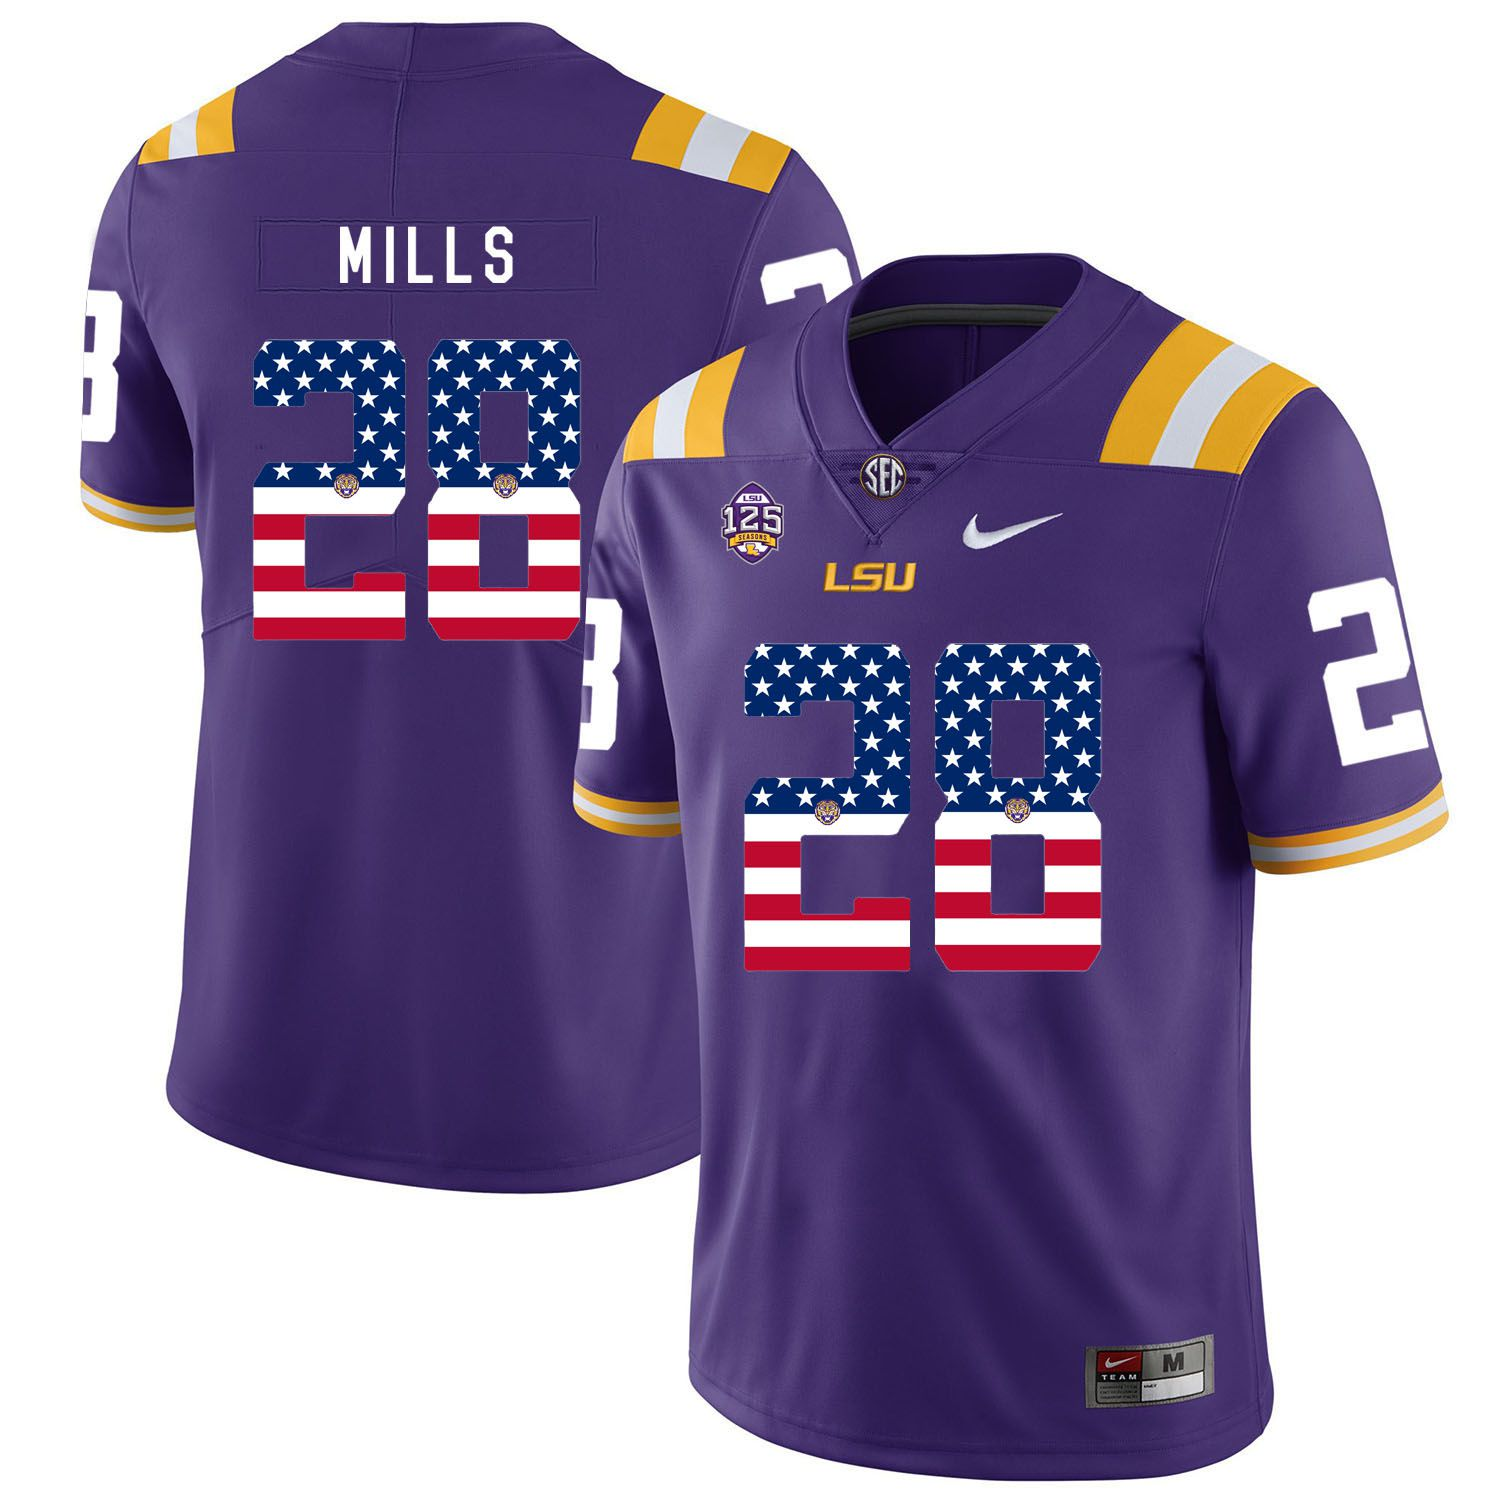 Men LSU Tigers 28 Mills Purple Flag Customized NCAA Jerseys